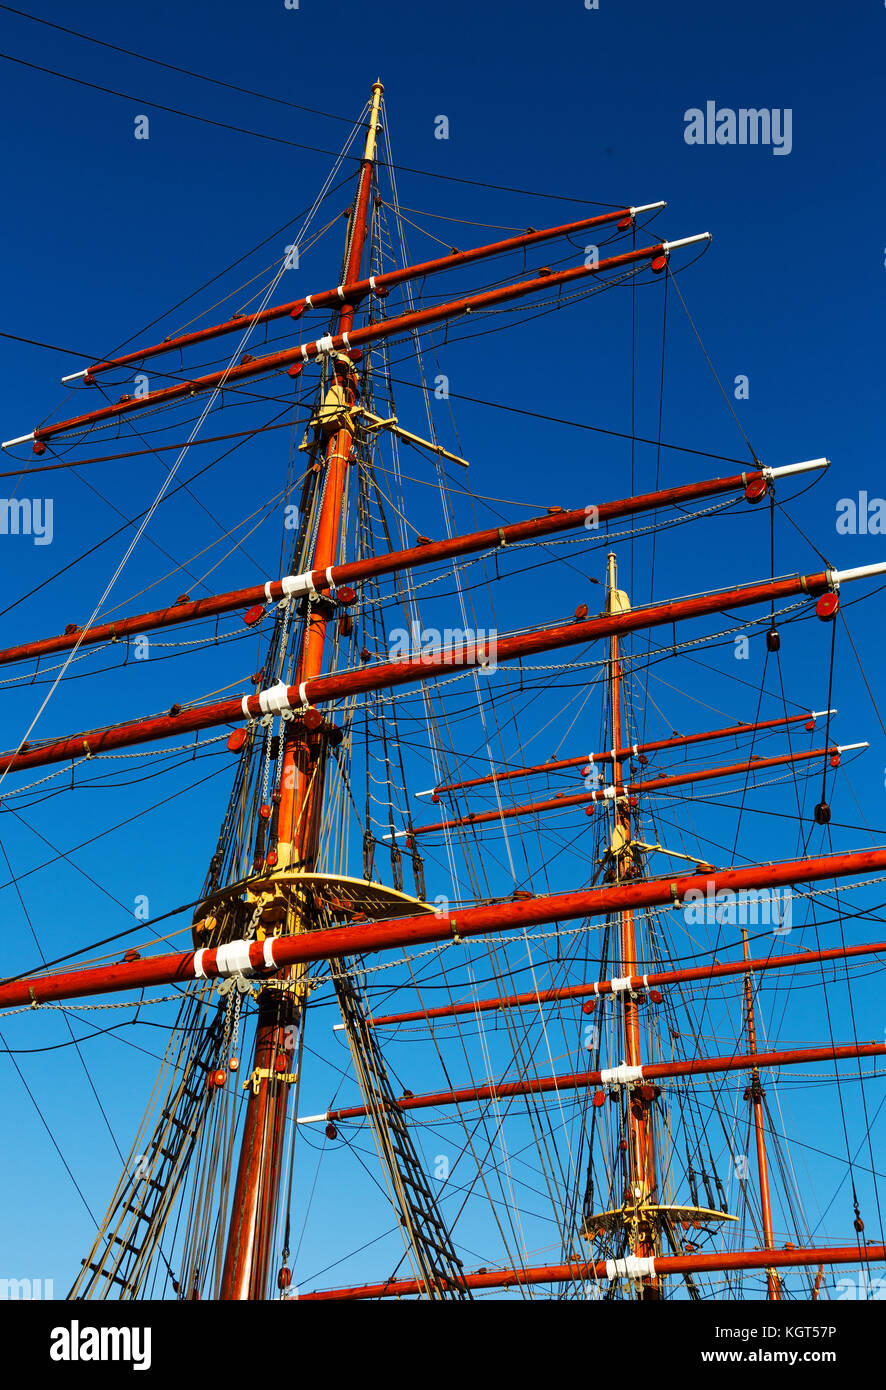 RRS Discovery, Royal Research Ship at Discovery Point, Dundee, Scotland, UK - Stock Image